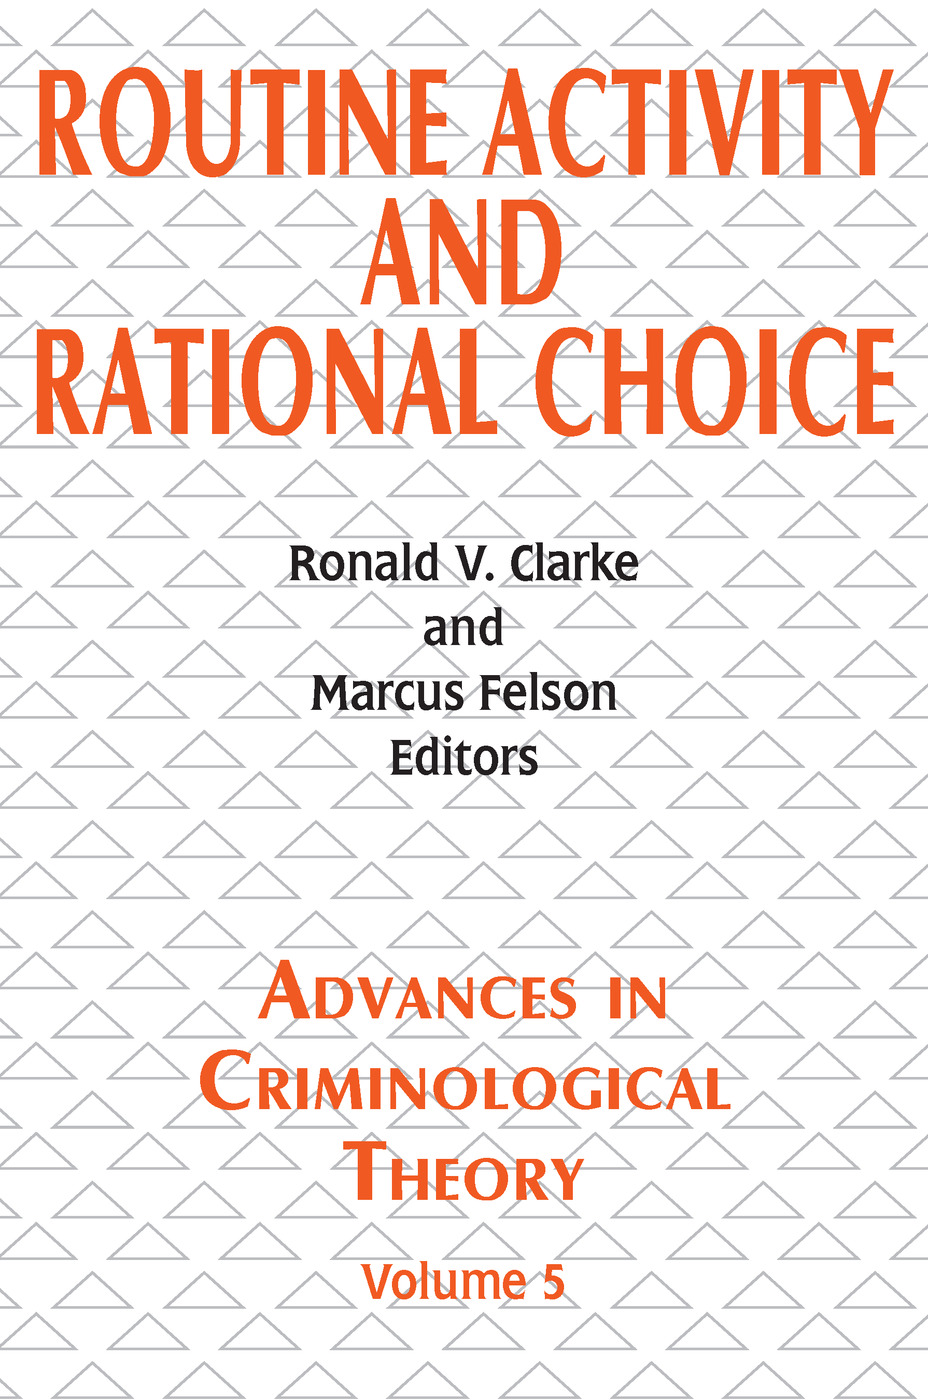 Crime Prevention through Environmental Design, Opportunity Theory, and Rational Choice Models